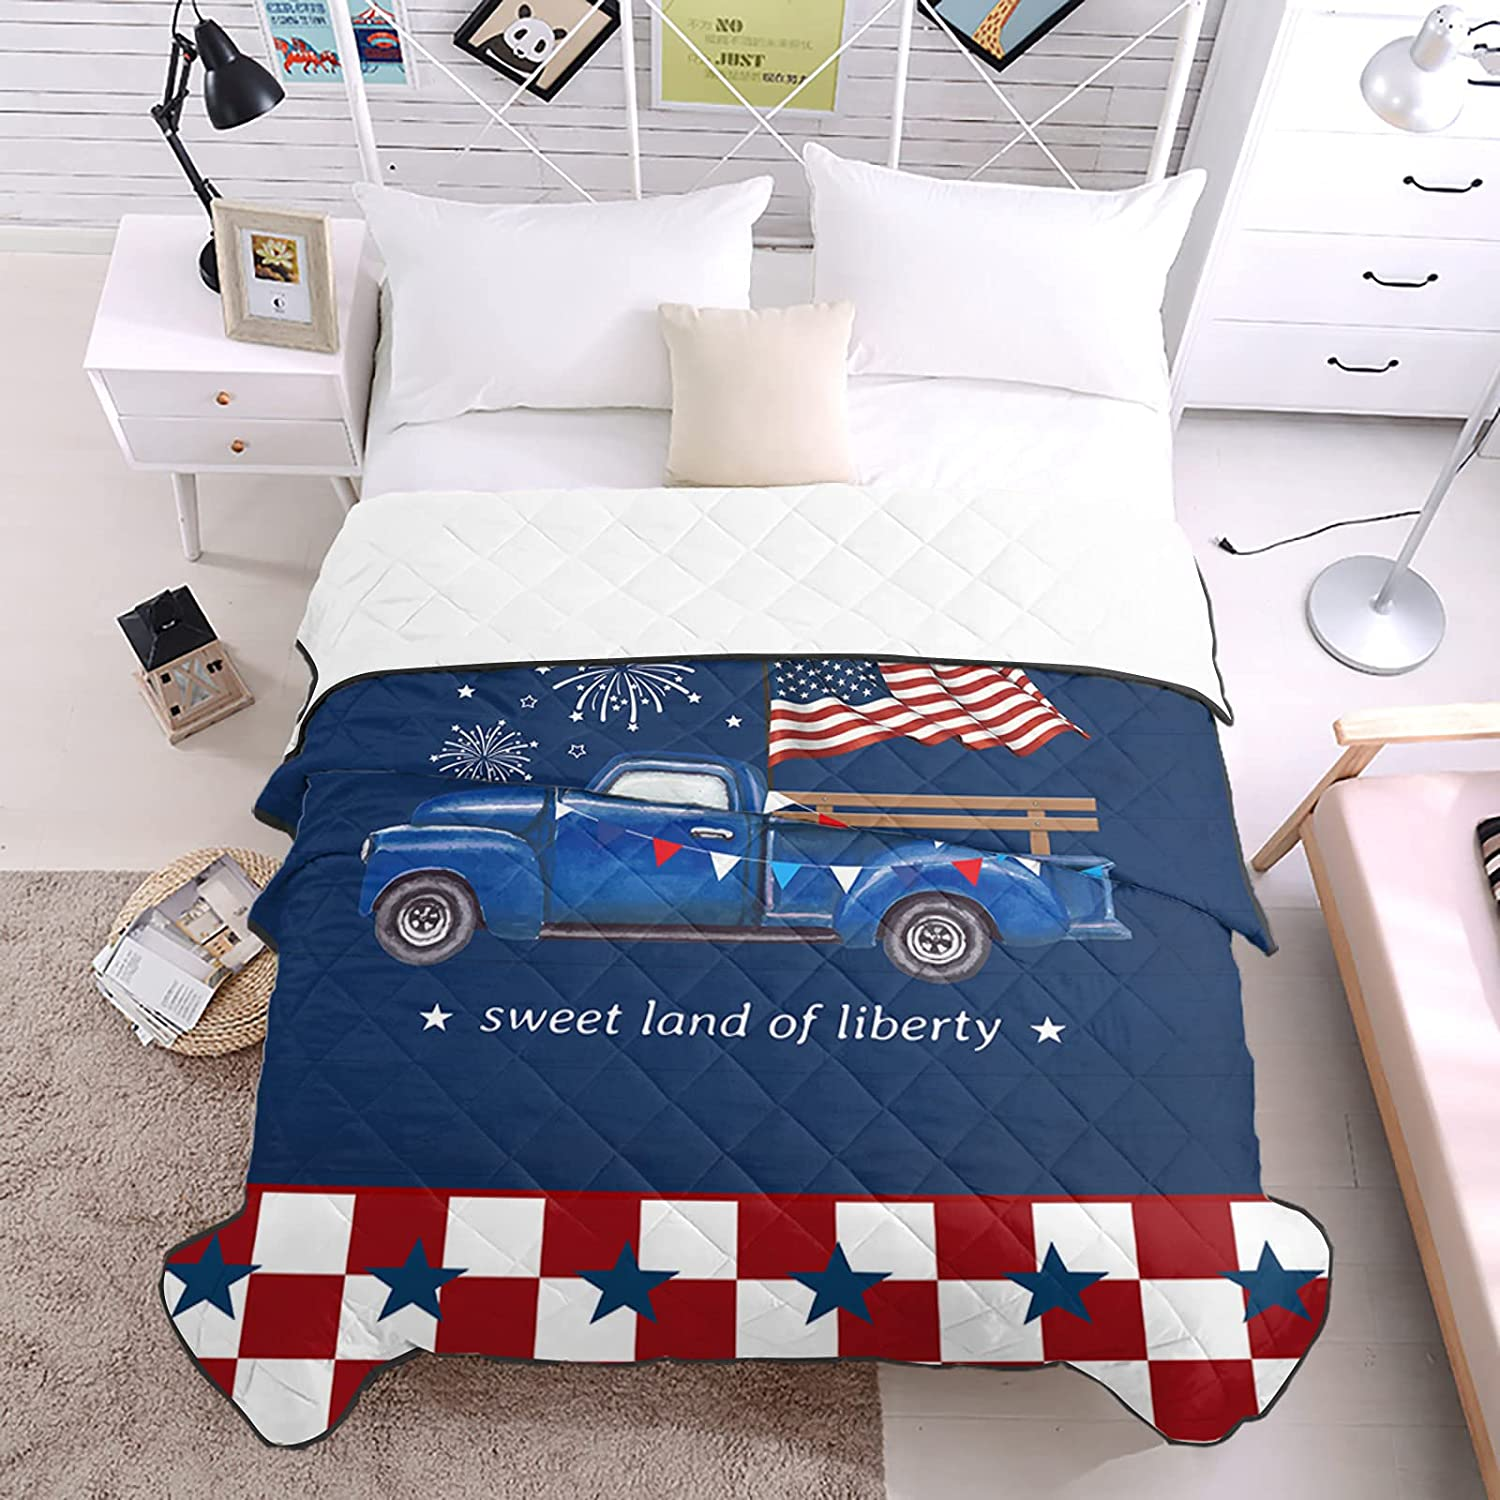 Bedding Duvets Buffalo Check Independence Flag Max 53% OFF Bl Las Vegas Mall Geometric Day